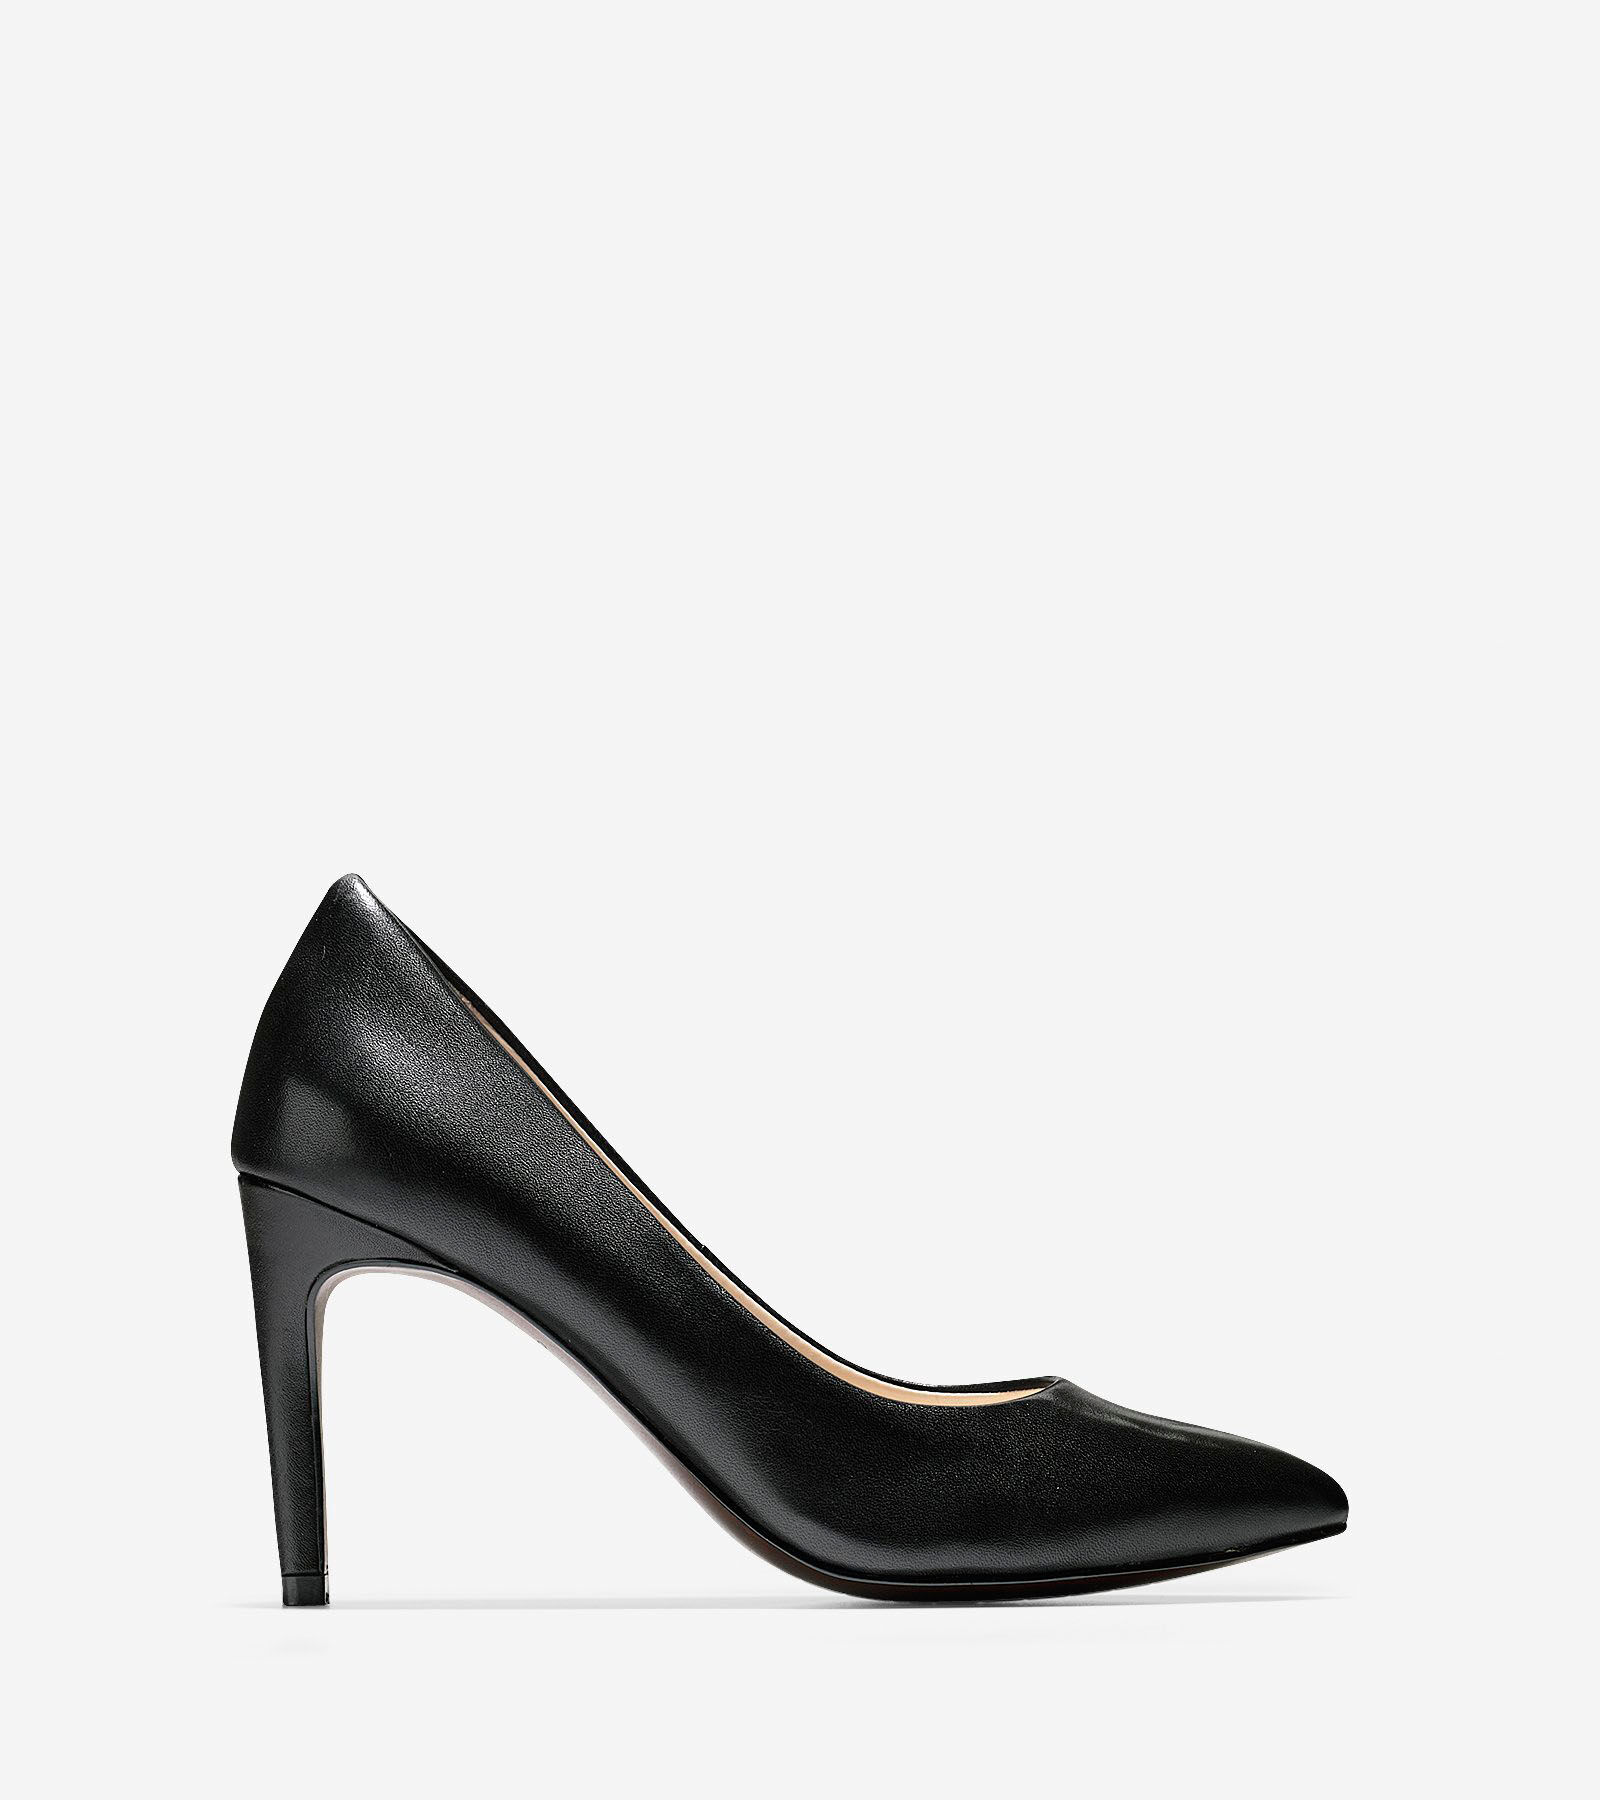 Pumps & High Heels for Women On Sale, Black, Leather, 2017, 3 5.5 Anna F.